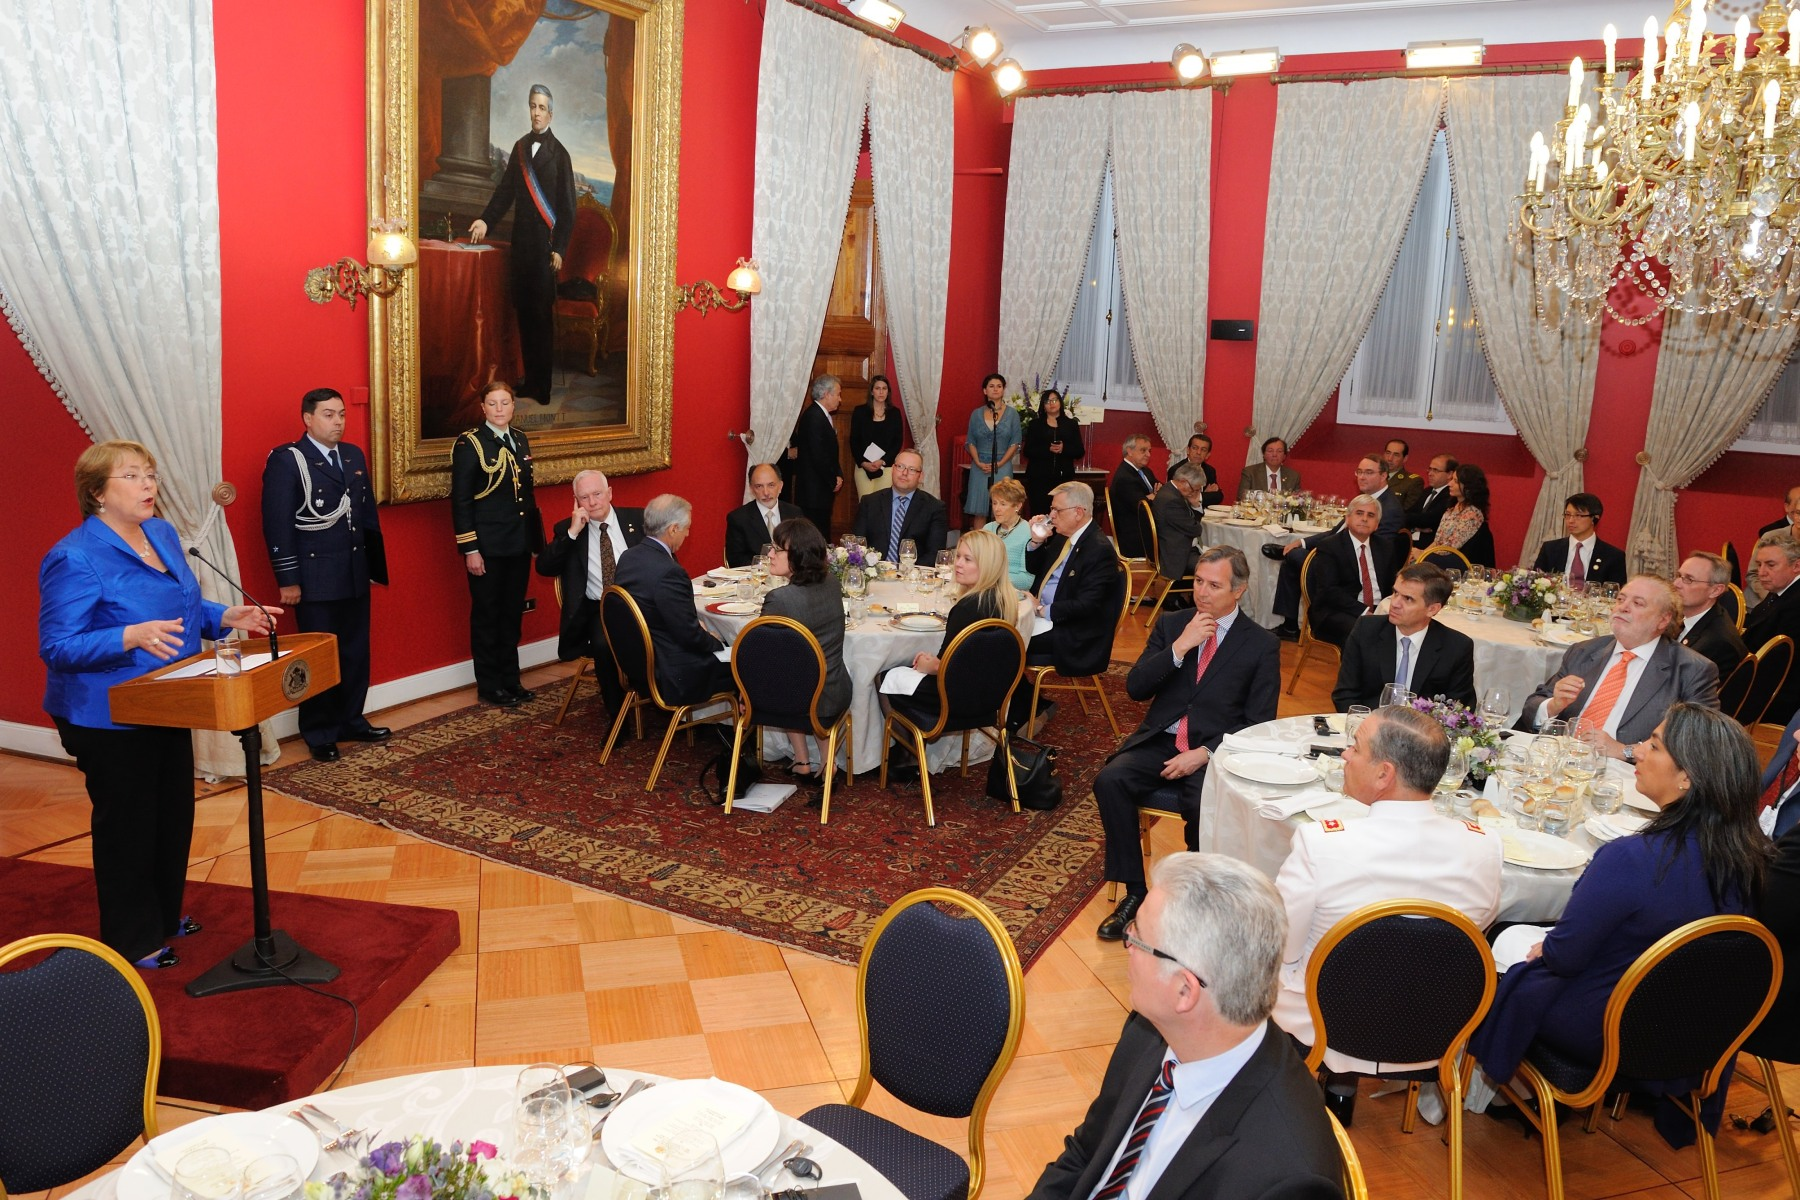 Their Excellencies and the Canadian delegation took part in a State luncheon hosted by President Bachelet, in honour of their visit to the country.